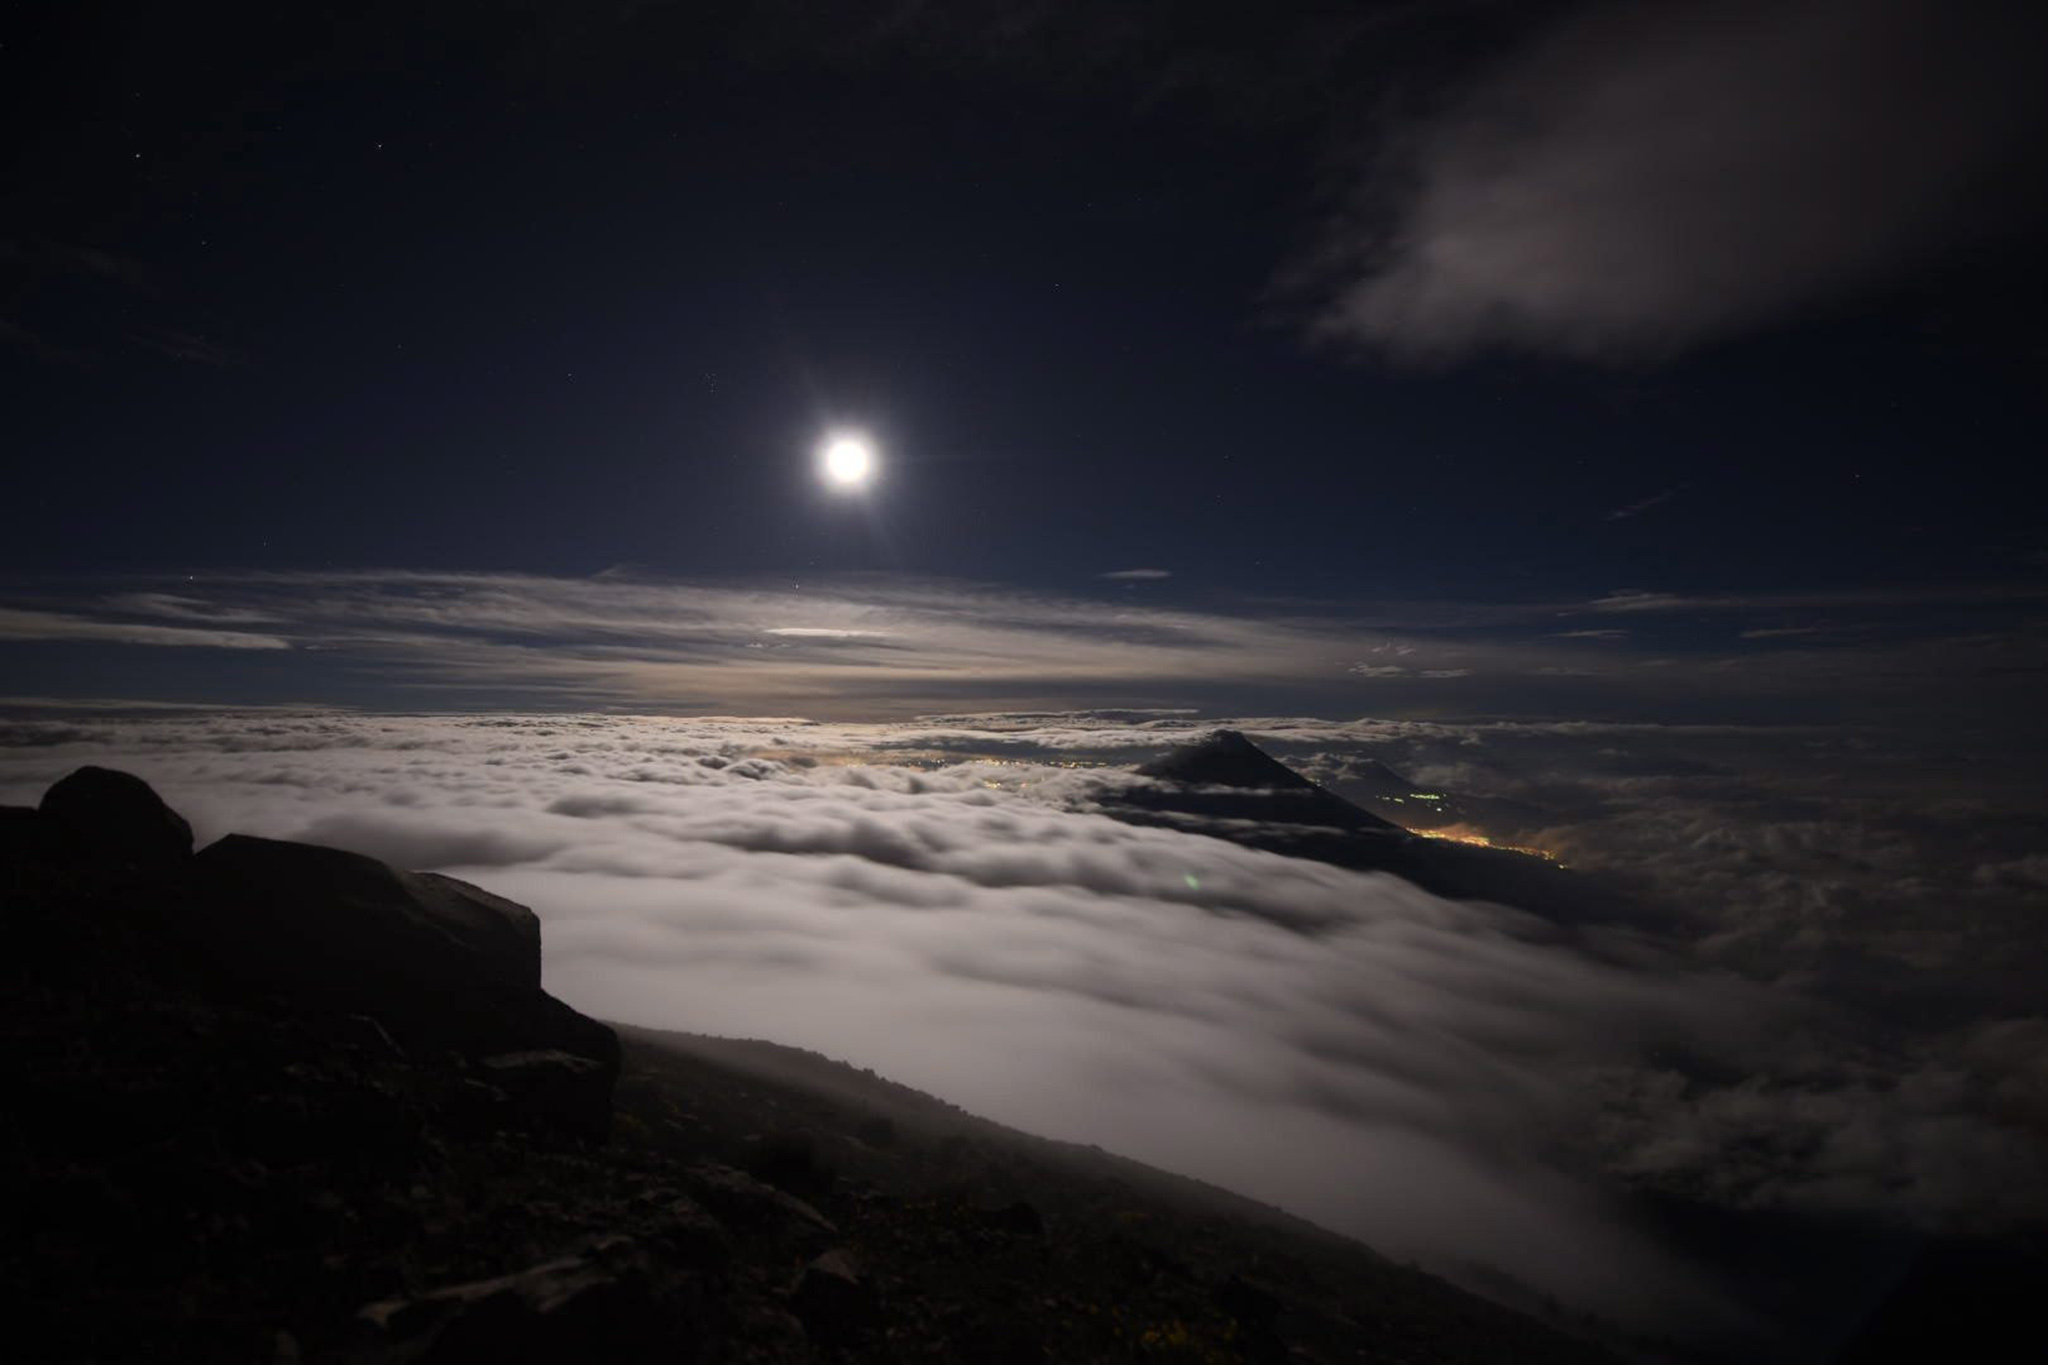 A view of the full moon over Volcan de Fuego (Volcano of Fire) Volcano, in Chimaltenango, Guatemala, 14 November 2016. The moon is the largest full moon since 1948, also known as the 'supermoon,' when the moon reaches its closest point to Earth. The next time the moon will be this close will be on 25 November 2034.  EPA/SANTIAGO BILLY